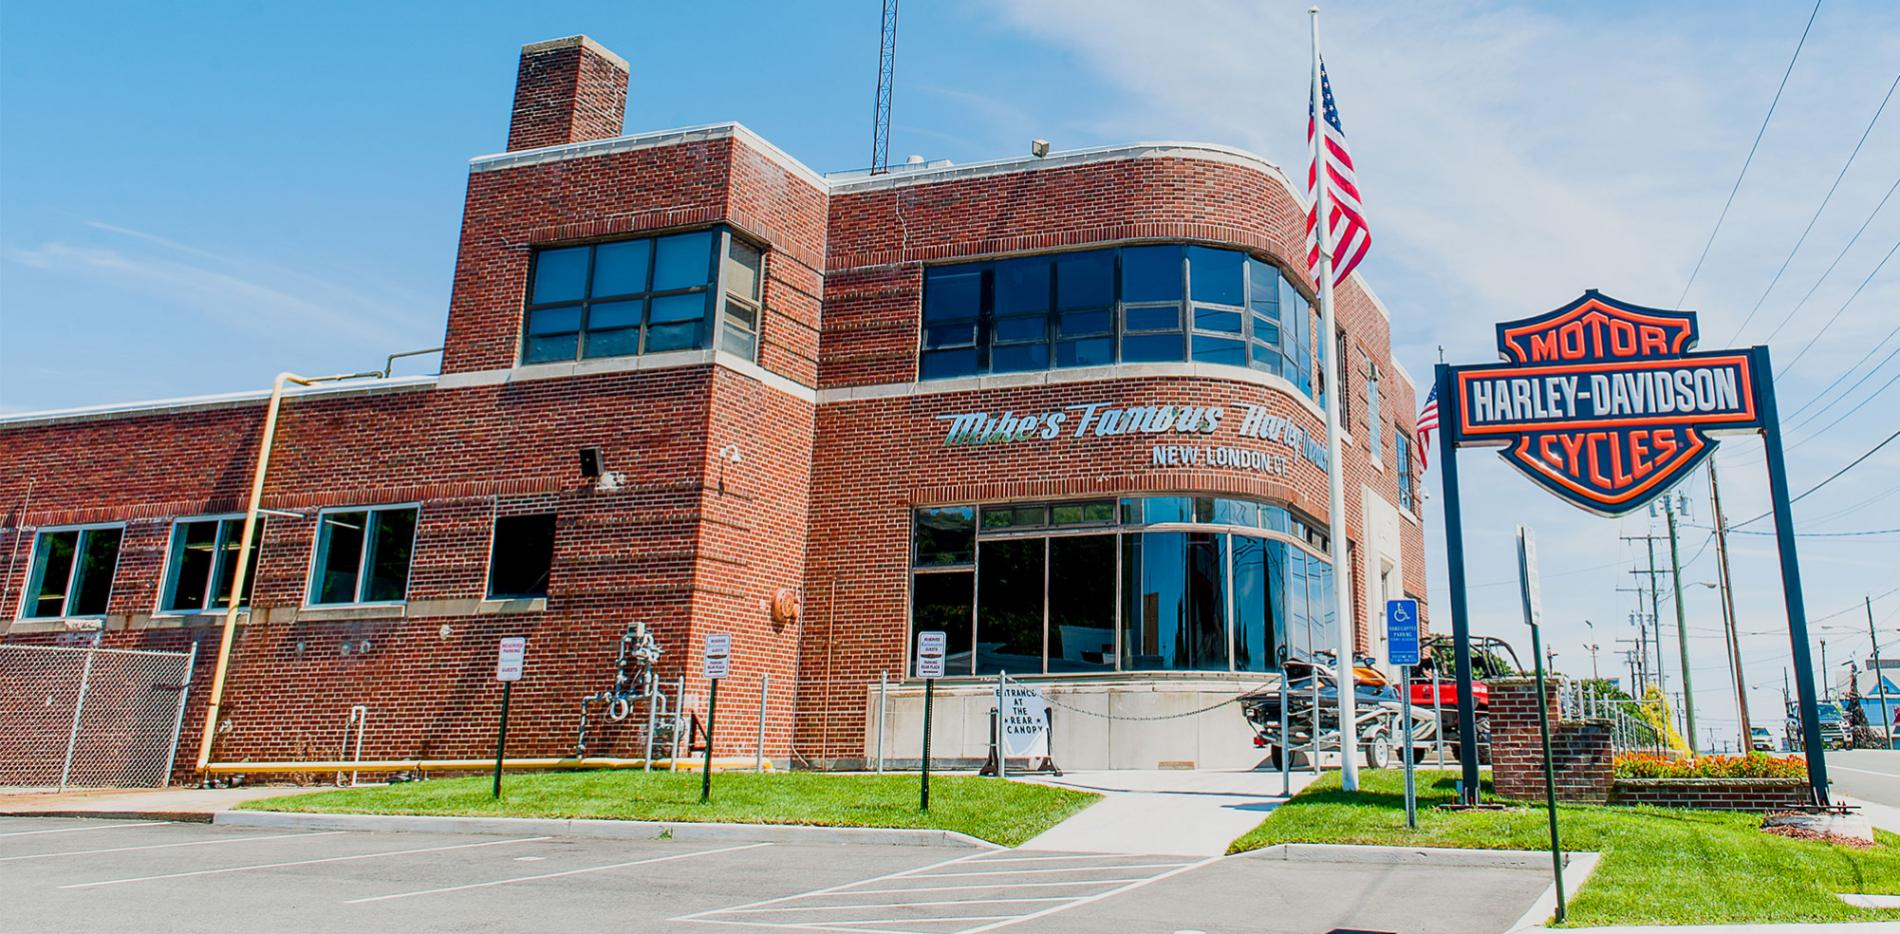 Mike's Famous Harley-Davidson building